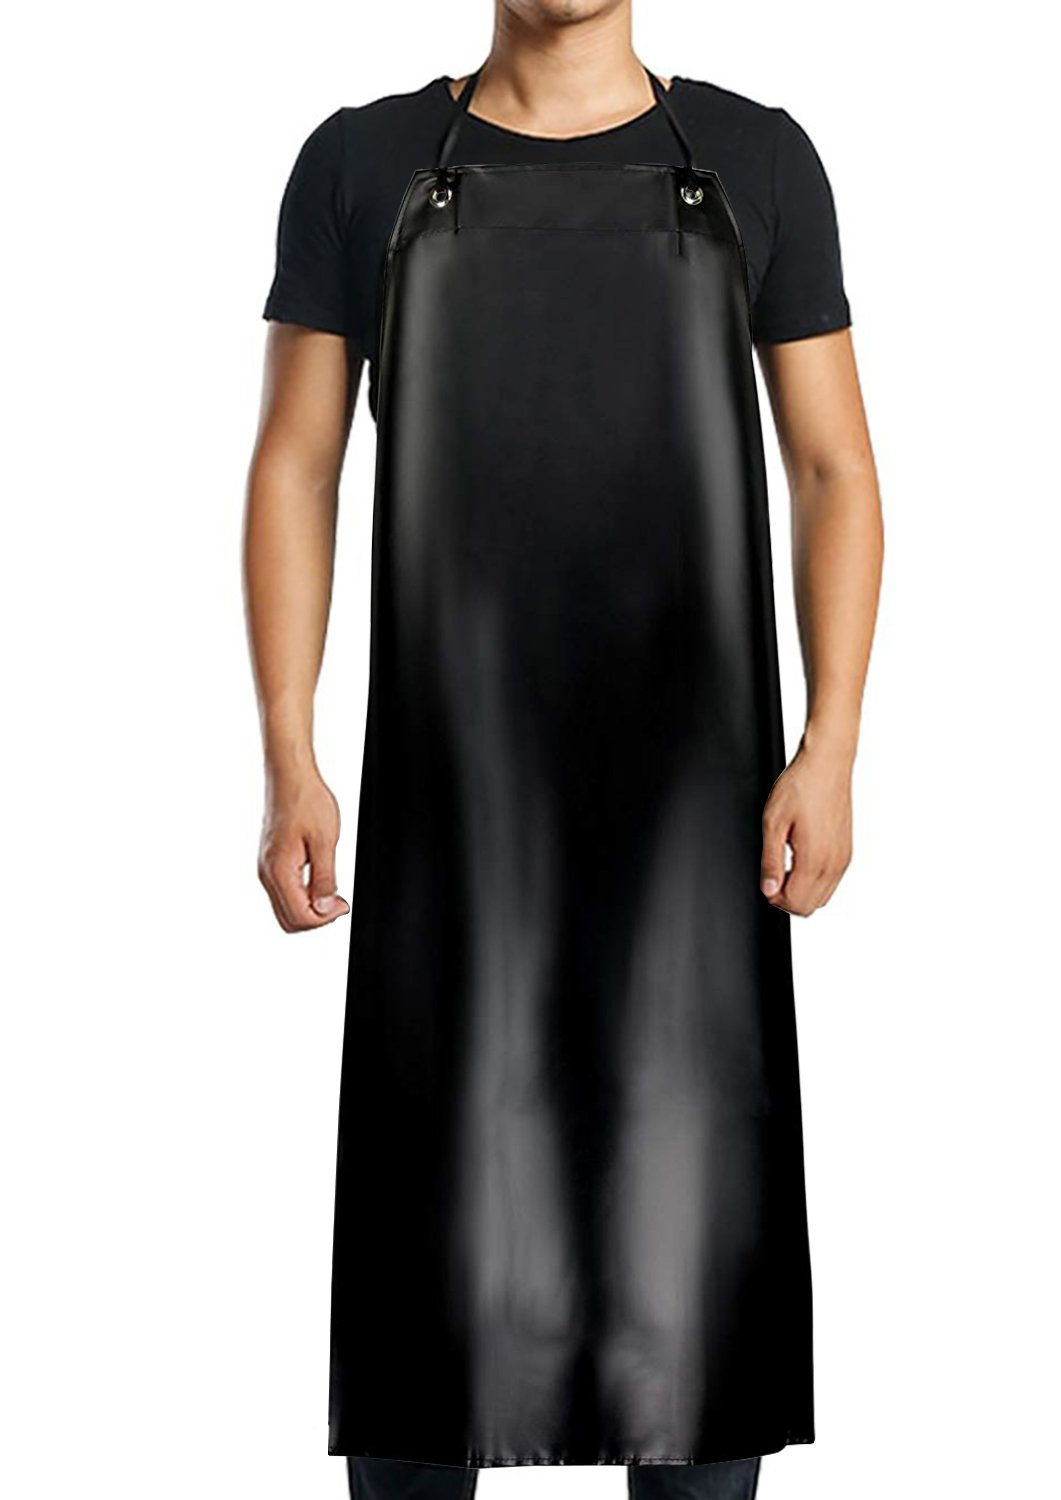 NANOOER Heavy Duty Vinyl Waterproof Apron Durable Ultra Lightweight Extra Long Black - Industrial Grade Material for Ultimate Protection by NANOOER